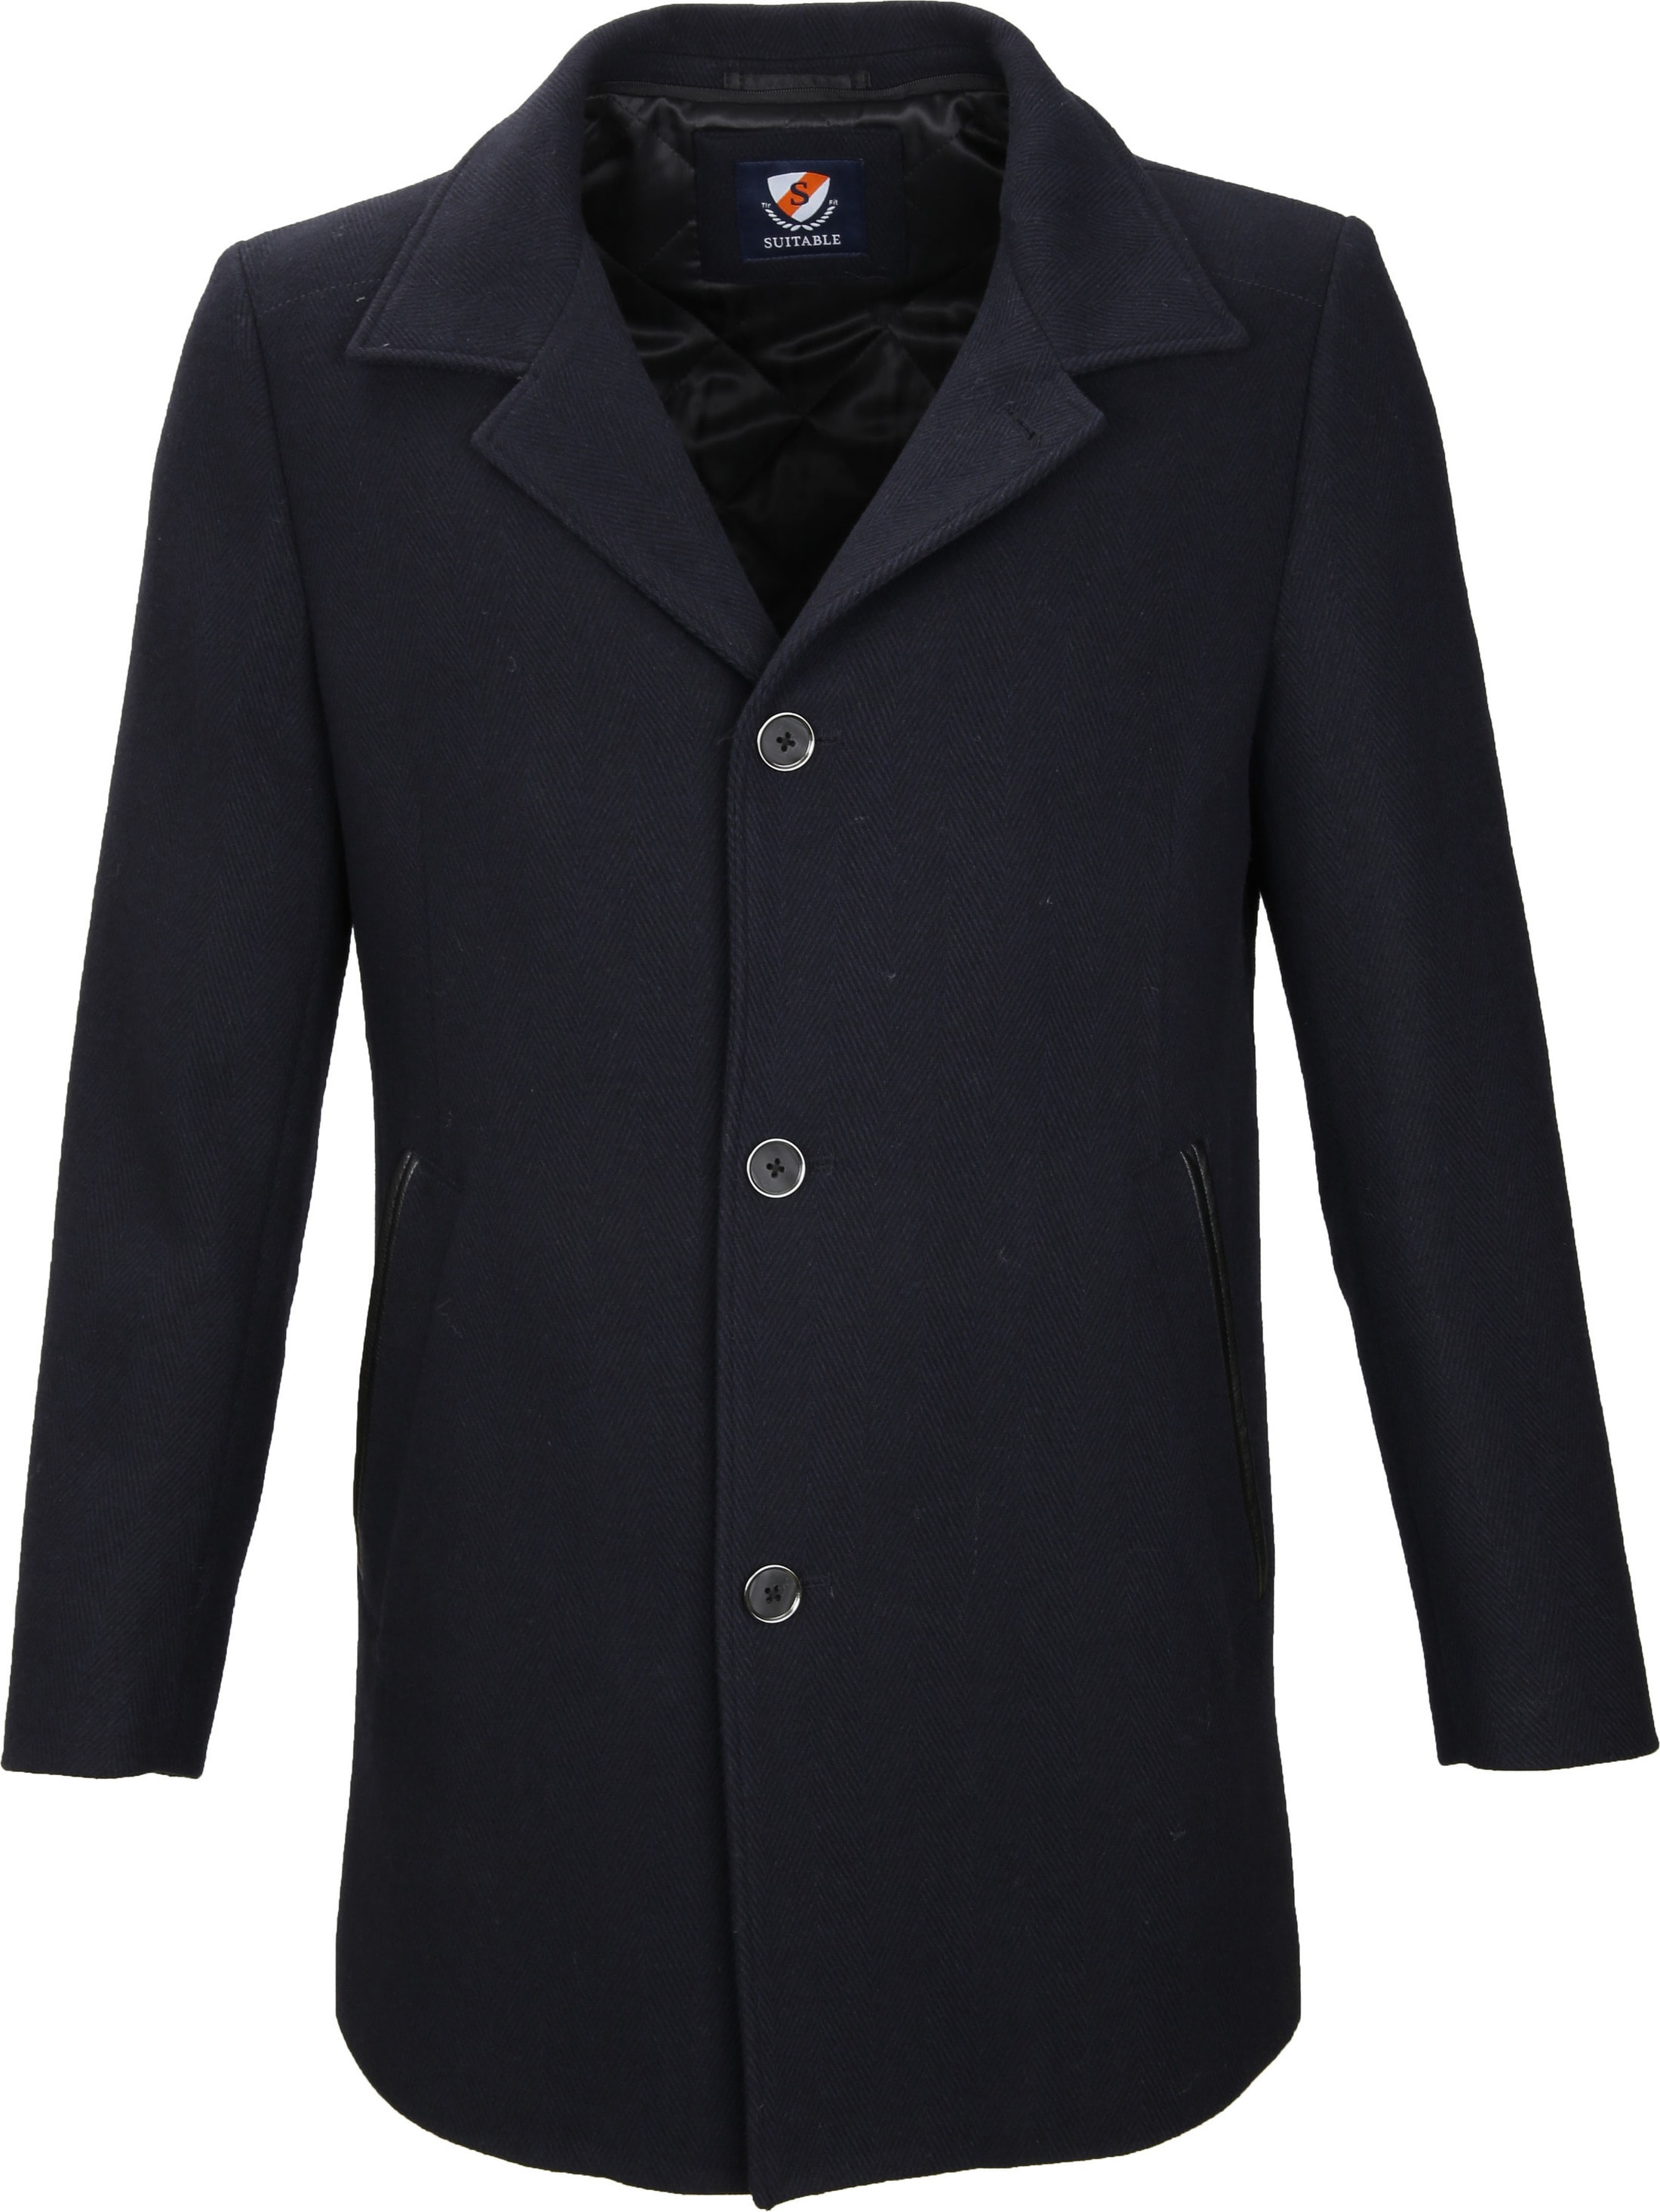 Suitable Coat Geke Inlay Navy foto 1